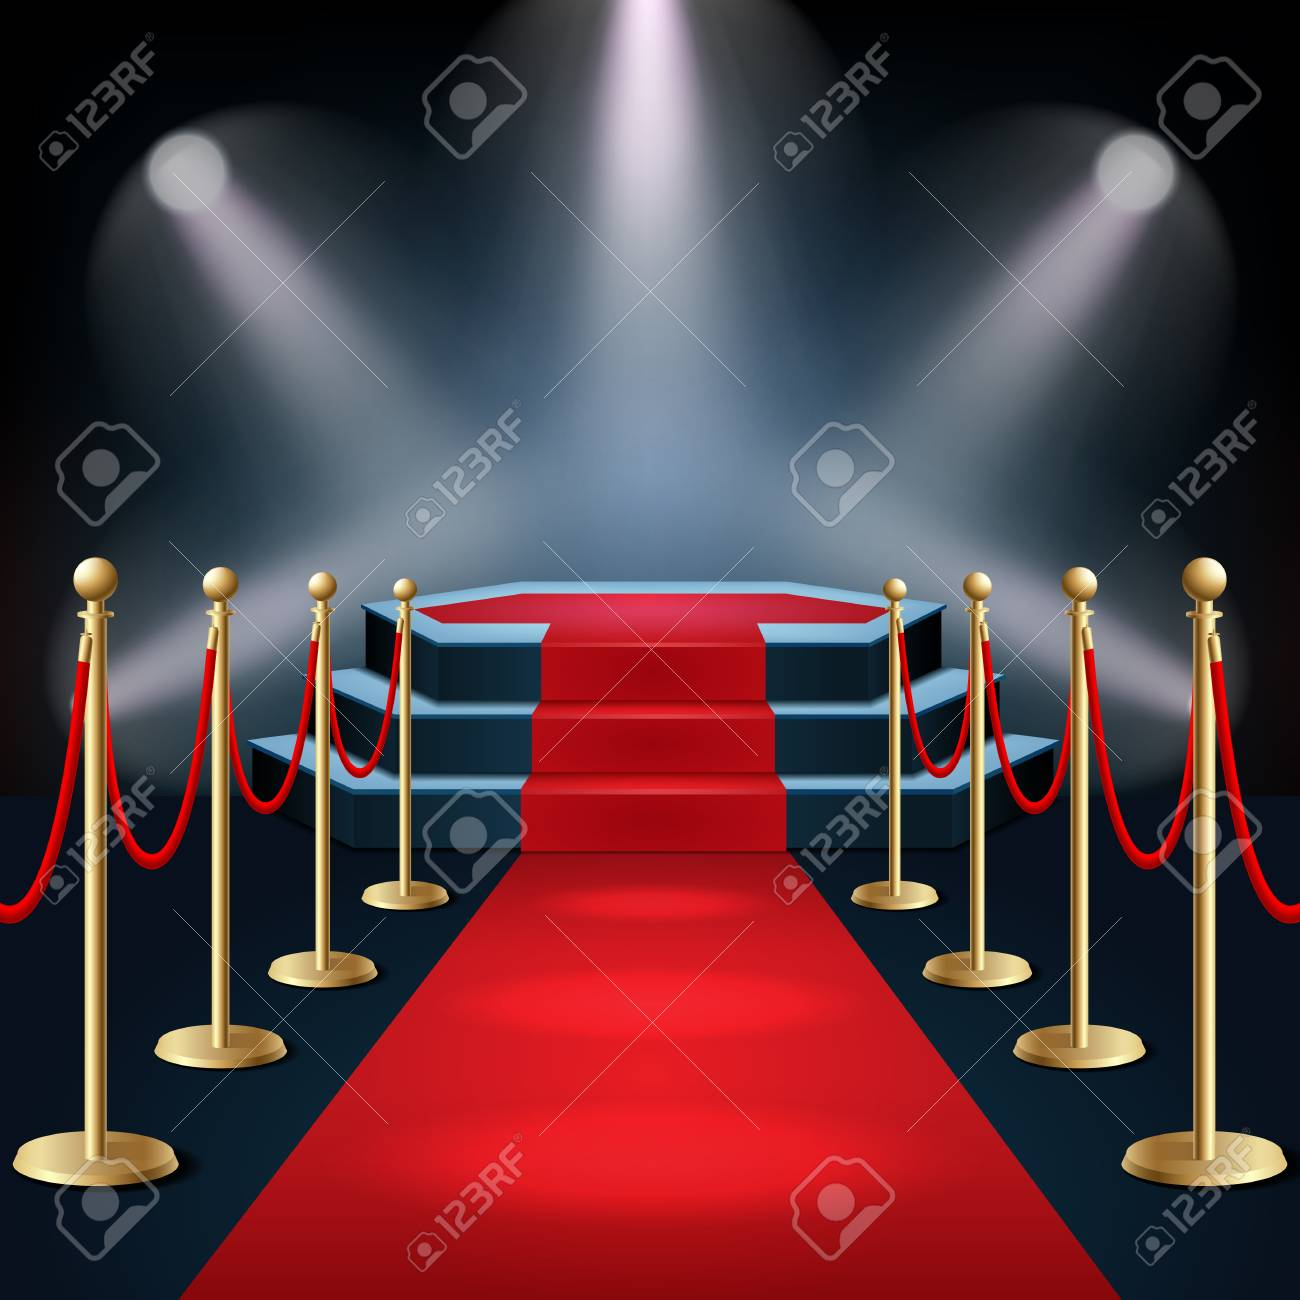 Podium with red carpet and barrier rope in glow of spotlights - 101191237